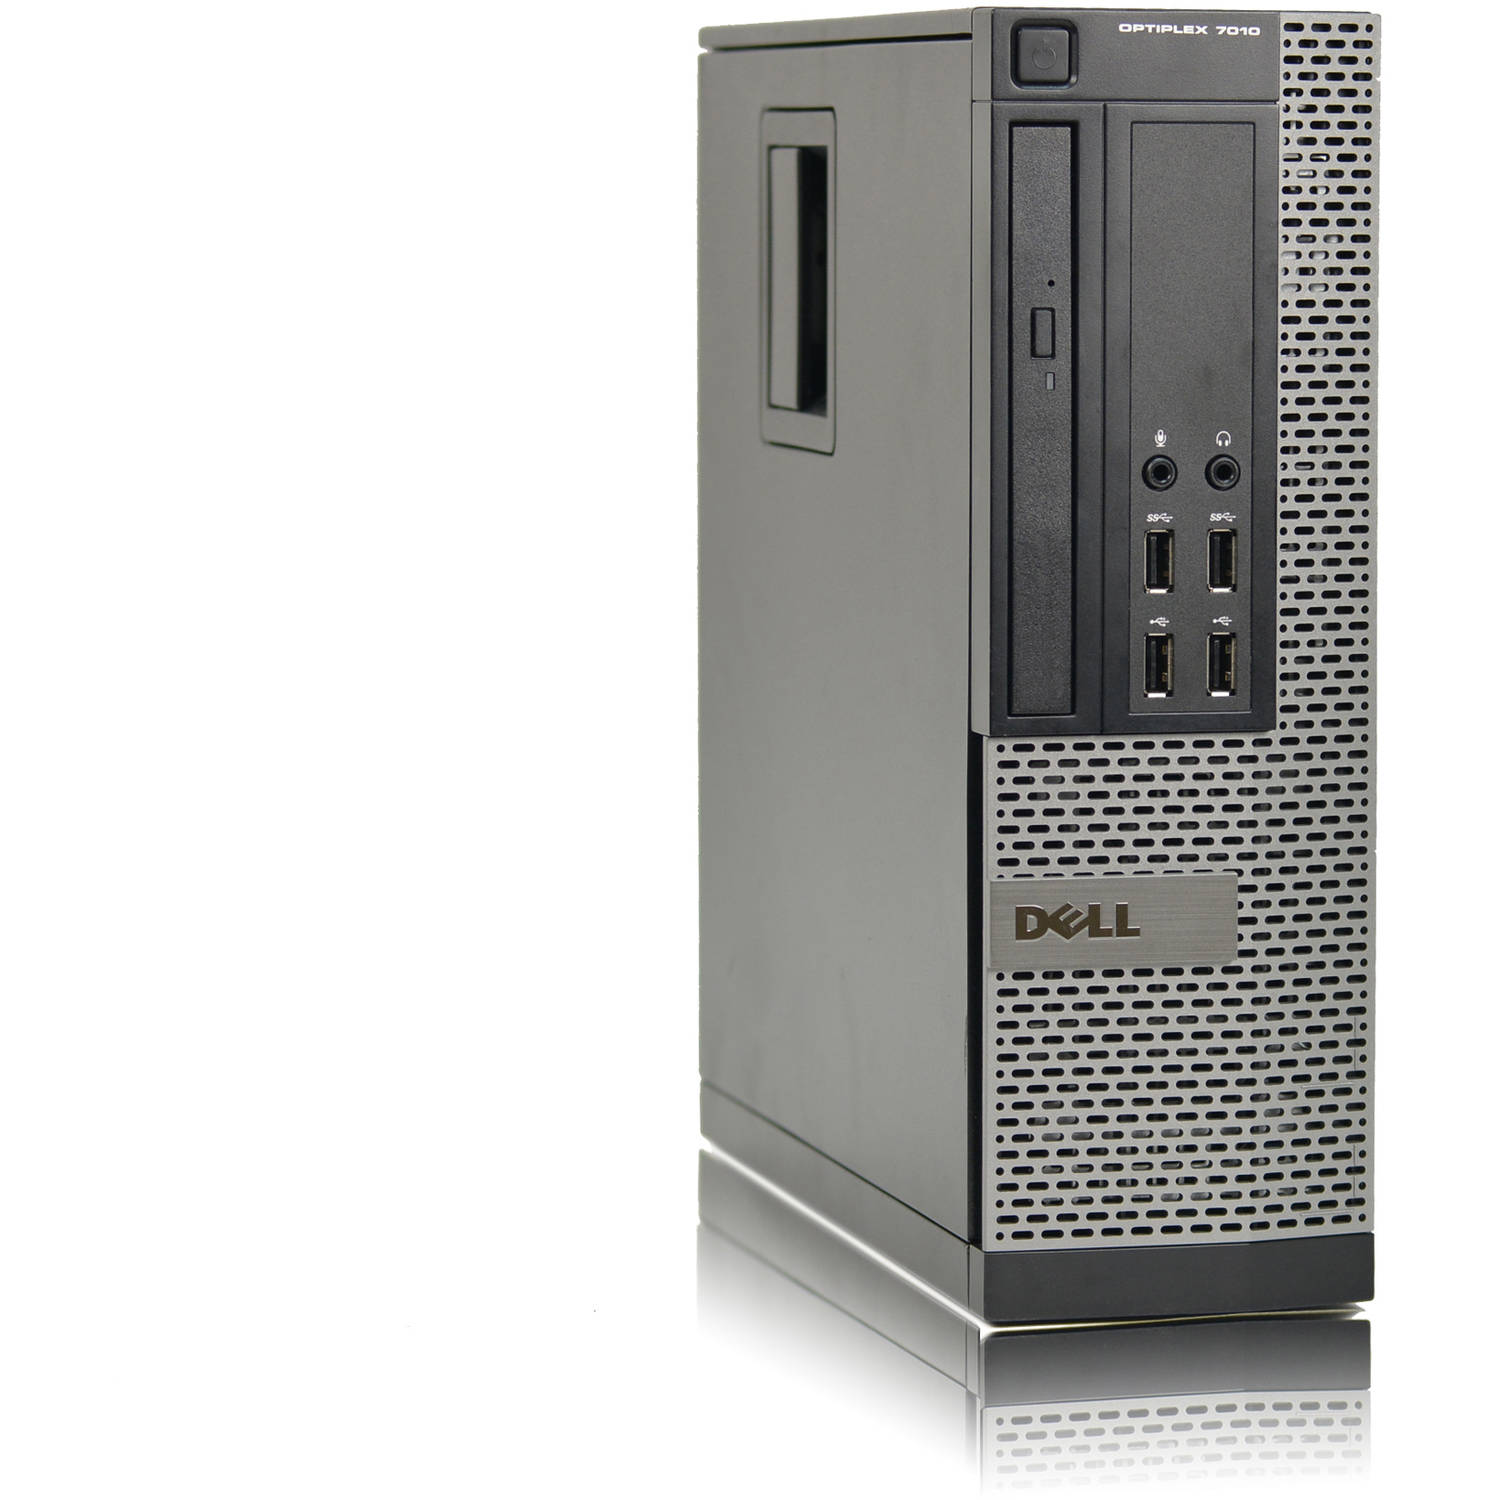 Refurbished Dell 7010-SFF Desktop PC with Intel Core i5-3470 Processor, 8GB Memory, 1TB Hard Drive and Windows 10 Pro (Monitor Not Included)